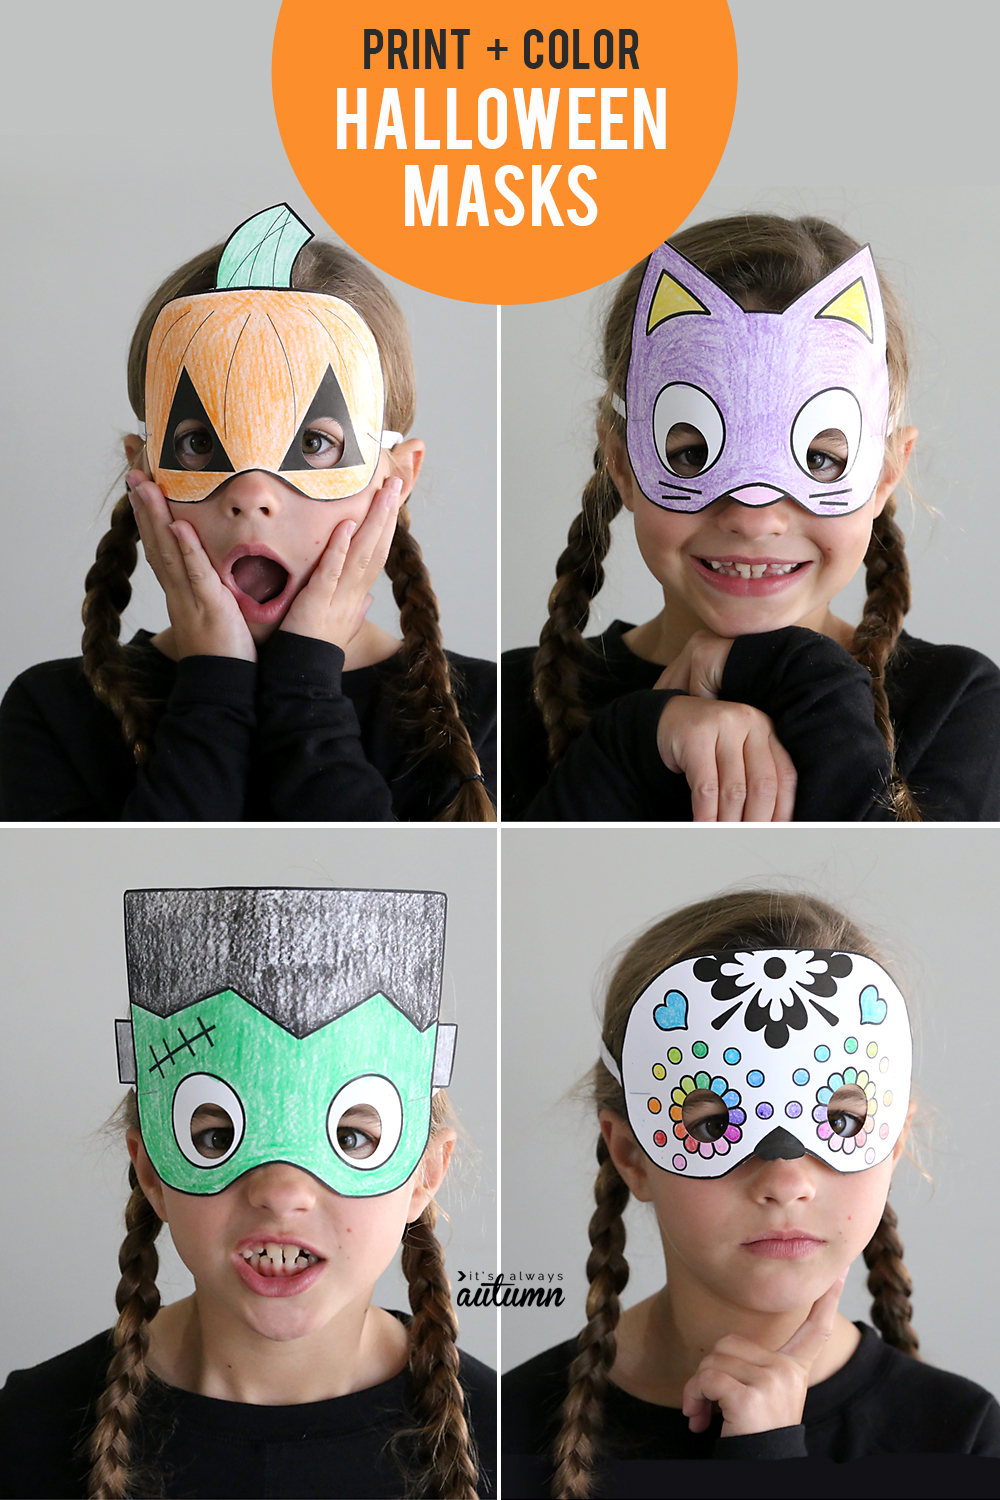 print color halloween masks are an easy and expensive halloween craft for kids these